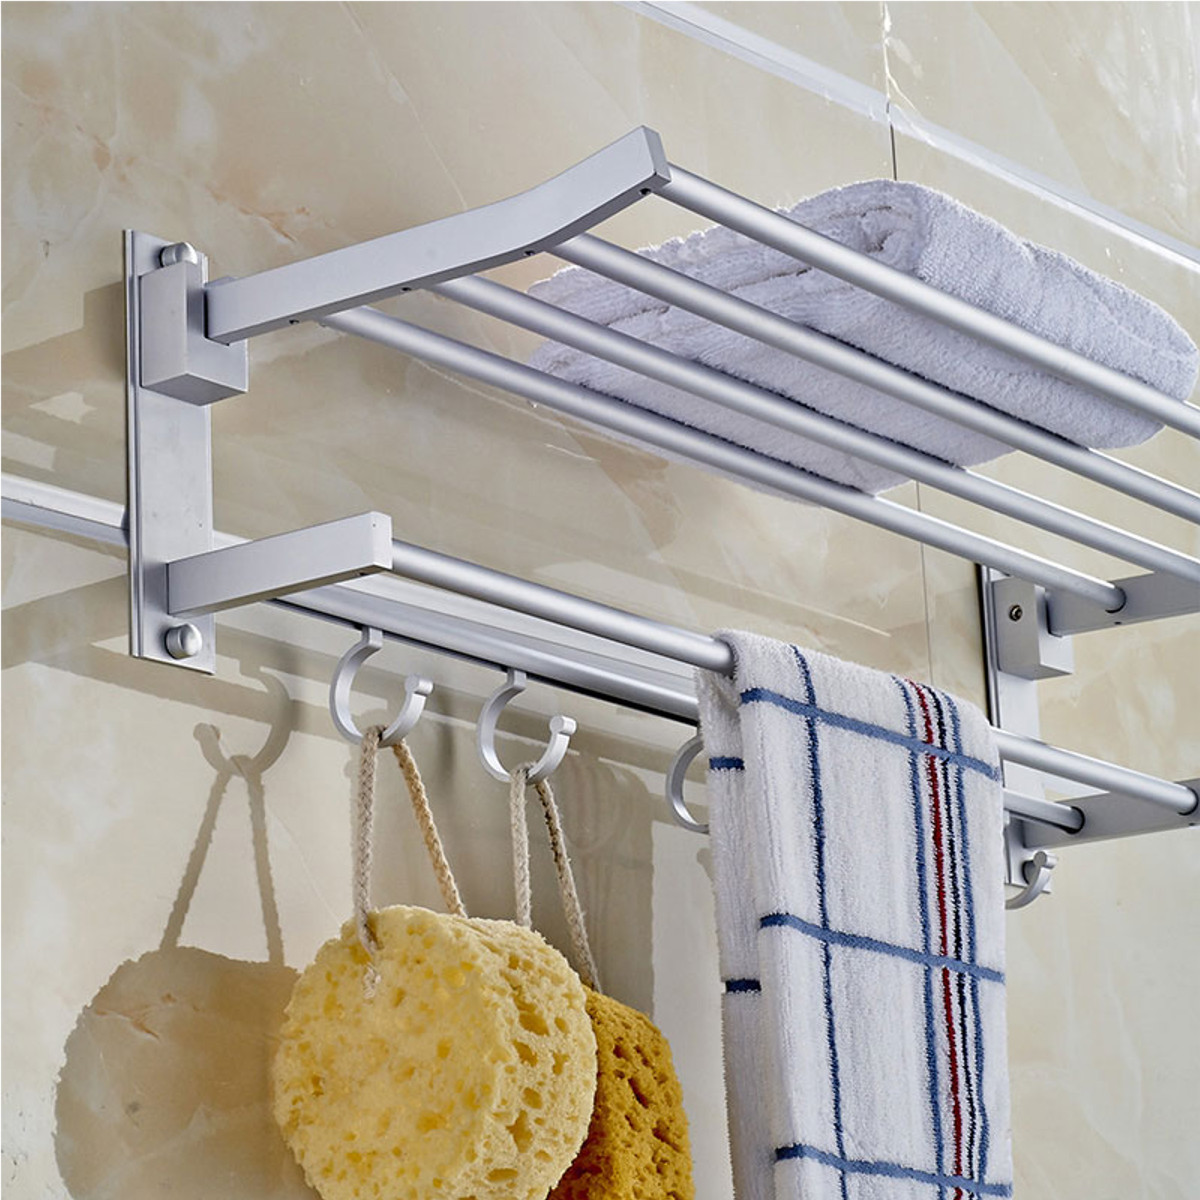 foldable alumimum towel bar rack holder hanger w 5 hooks bathroom hotel shelf ebay. Black Bedroom Furniture Sets. Home Design Ideas